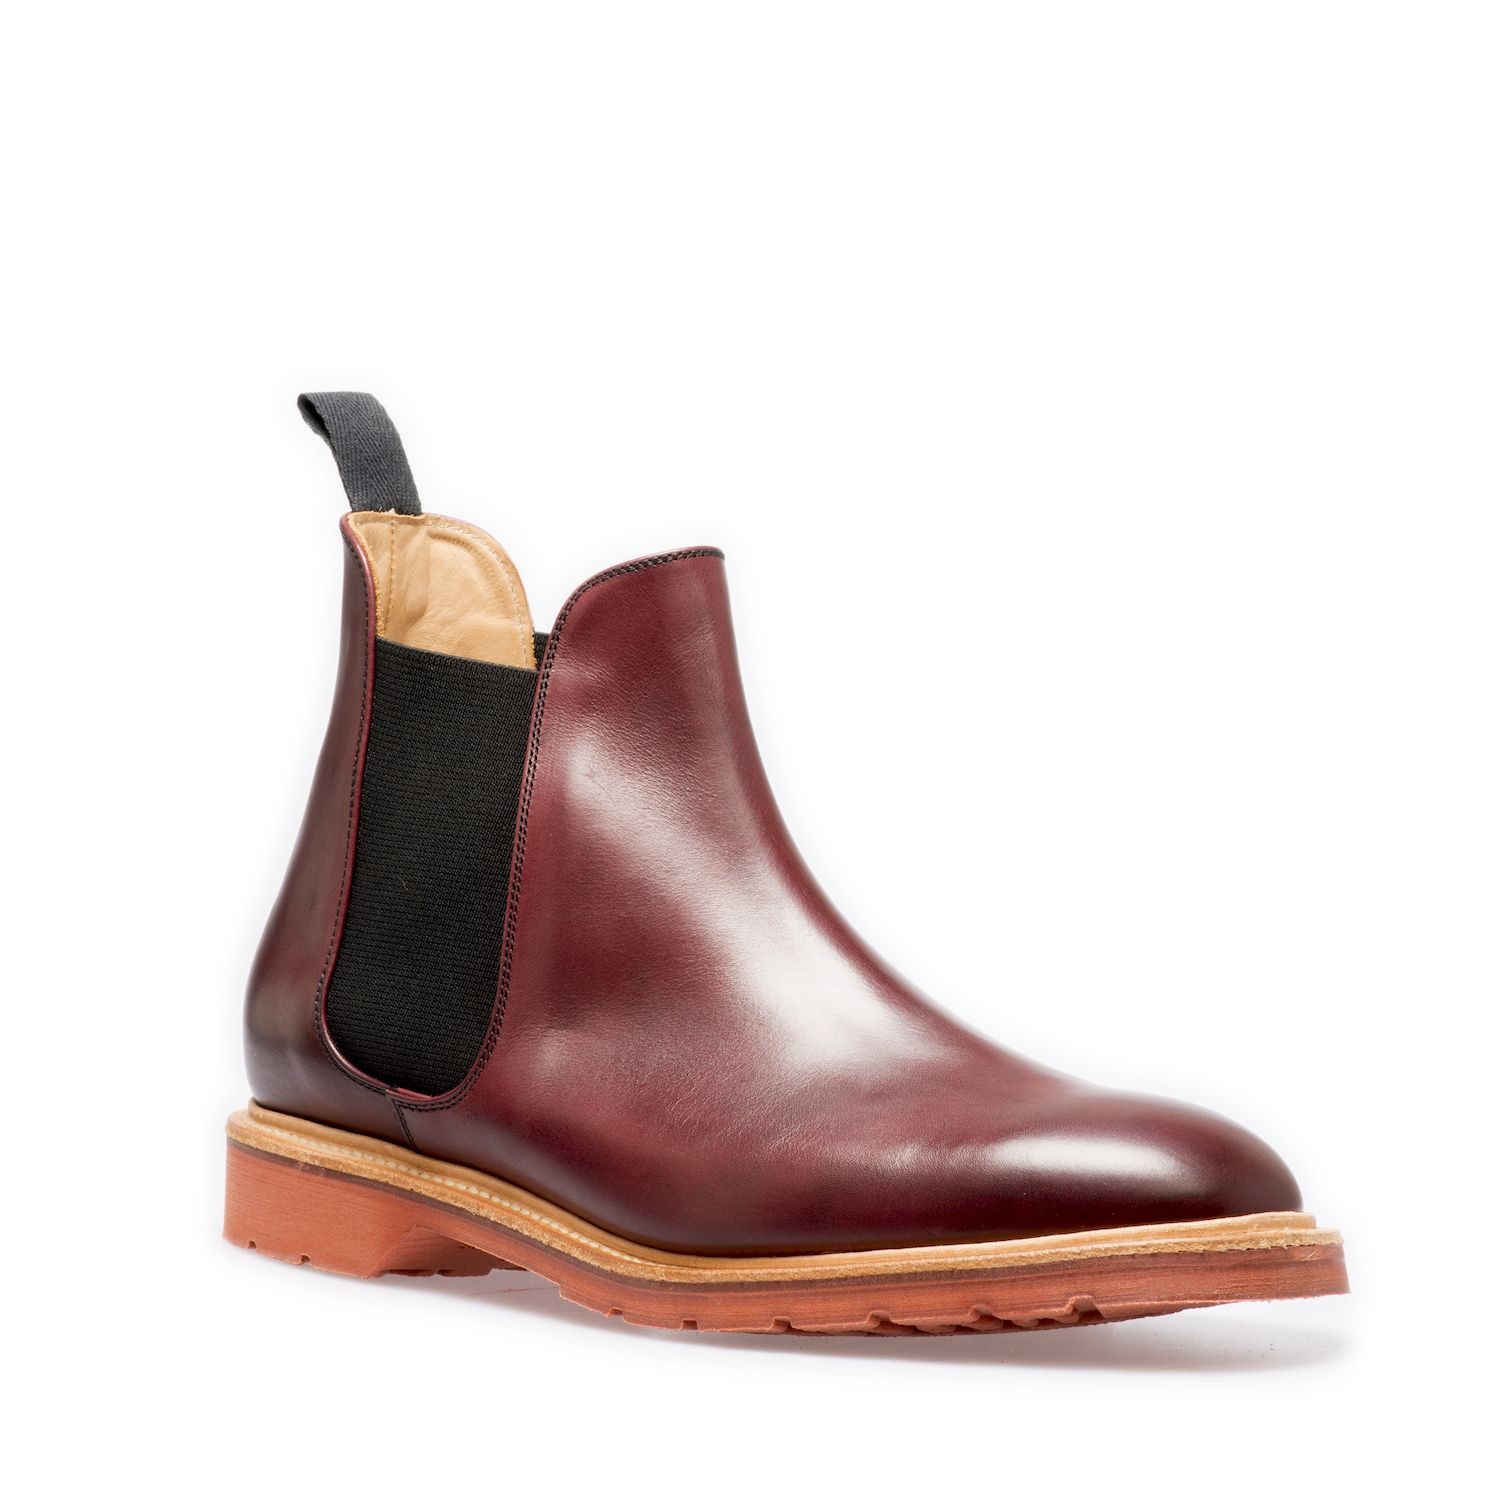 Solovair Chelsea Boot In Burgundy